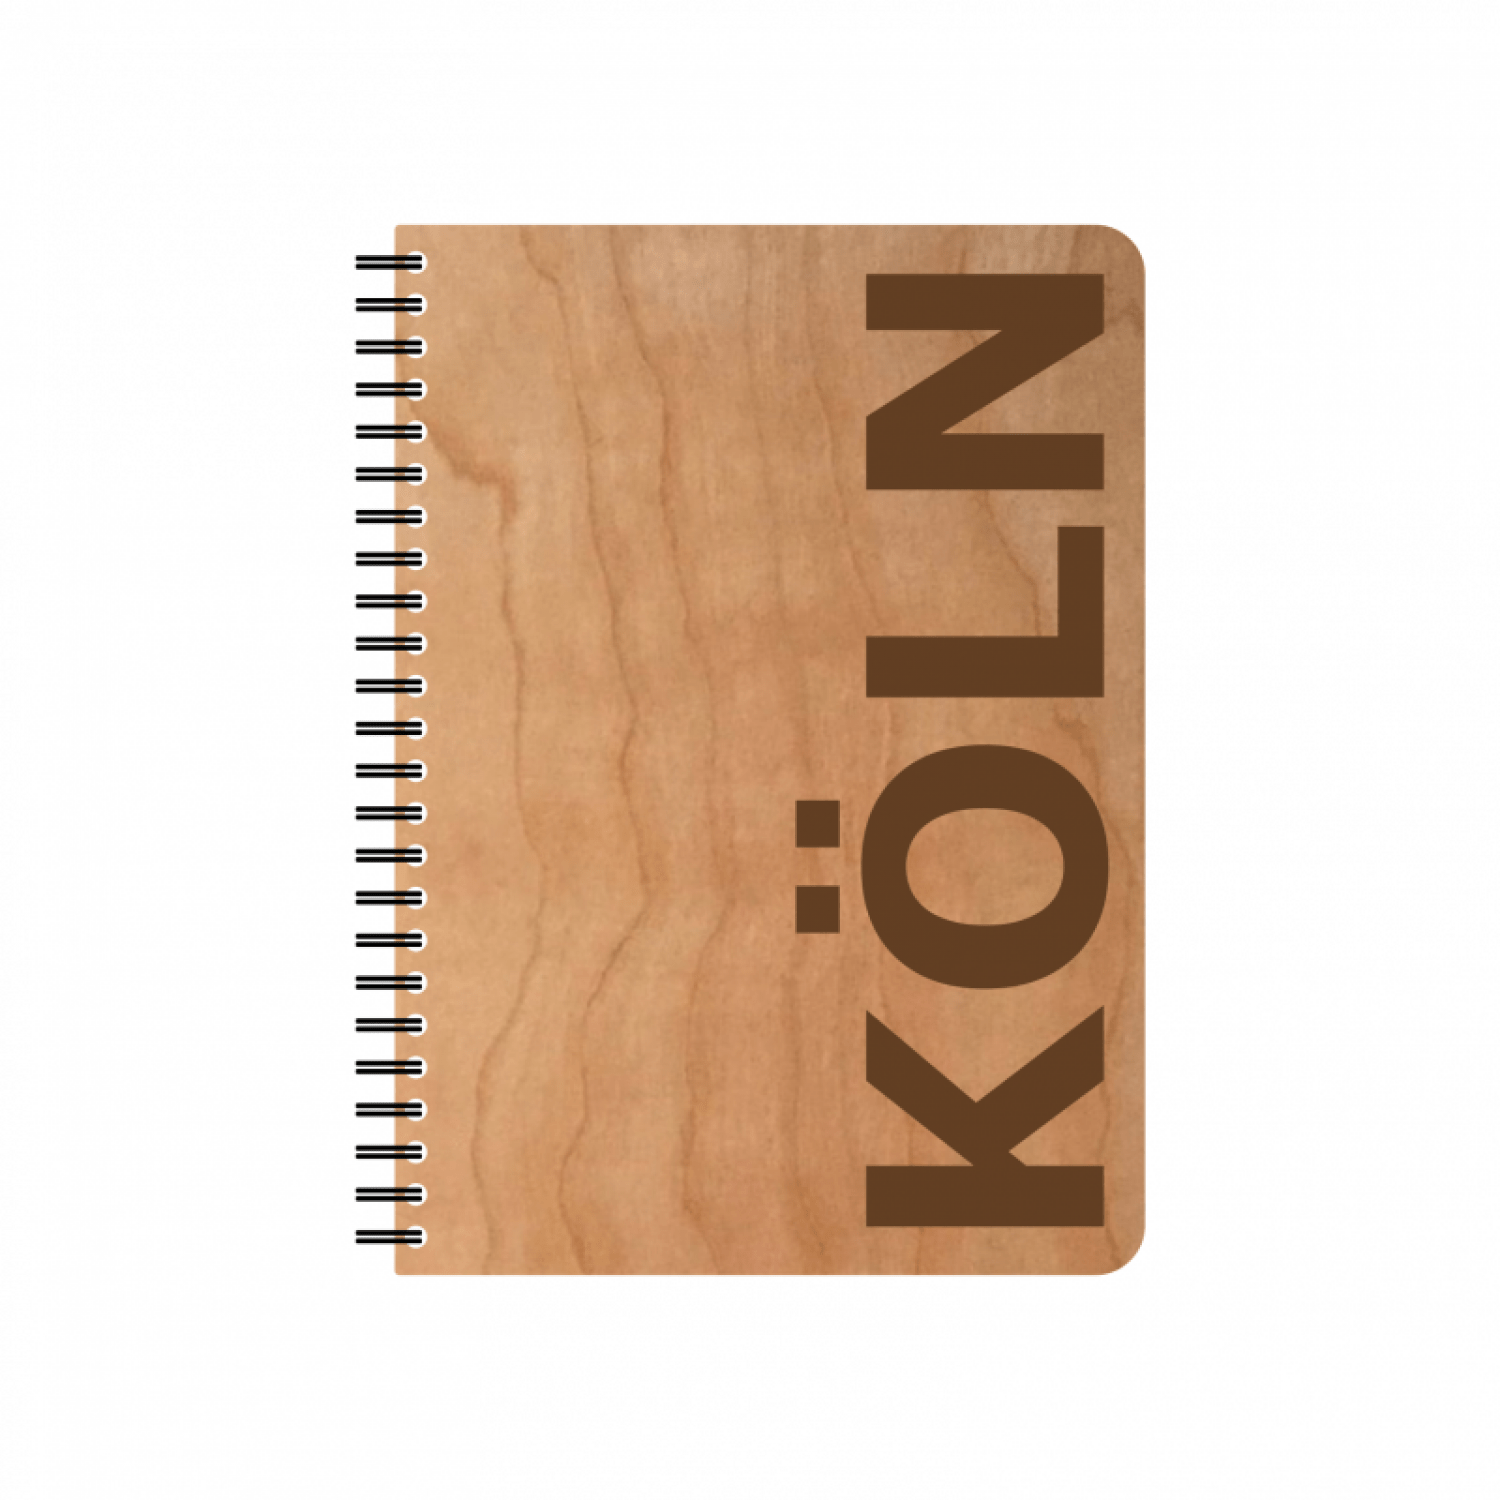 Notebook Köln Eco Notebook Cologne Cherrywood Veneer Cover Fsc Paper Various Formats